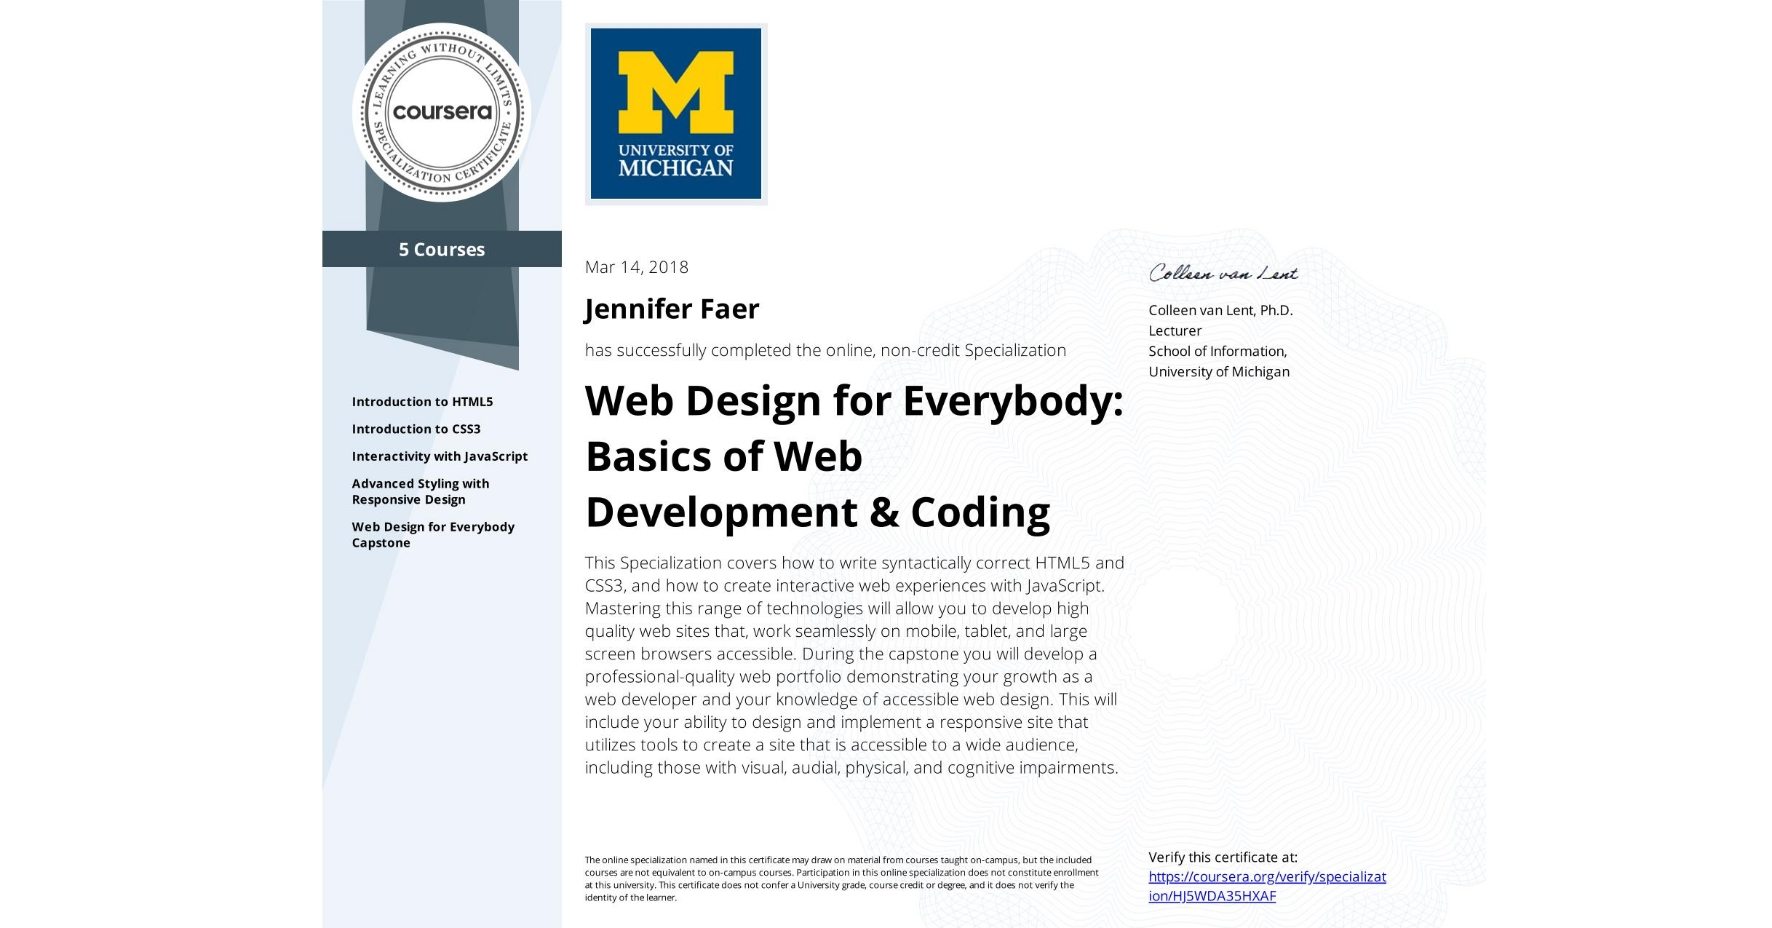 View certificate for Jennifer Faer, Web Design for Everybody: Basics of Web Development & Coding, offered through Coursera. This Specialization covers how to write syntactically correct HTML5 and CSS3, and how to create interactive web experiences with JavaScript. Mastering this range of technologies will allow you to develop high quality web sites that, work seamlessly on mobile, tablet, and large screen browsers accessible. During the capstone you will develop a professional-quality web portfolio demonstrating your growth as a web developer and your knowledge of accessible web design. This will include your ability to design and implement a responsive site that utilizes tools to create a site that is accessible to a wide audience, including those with visual, audial, physical, and cognitive impairments.